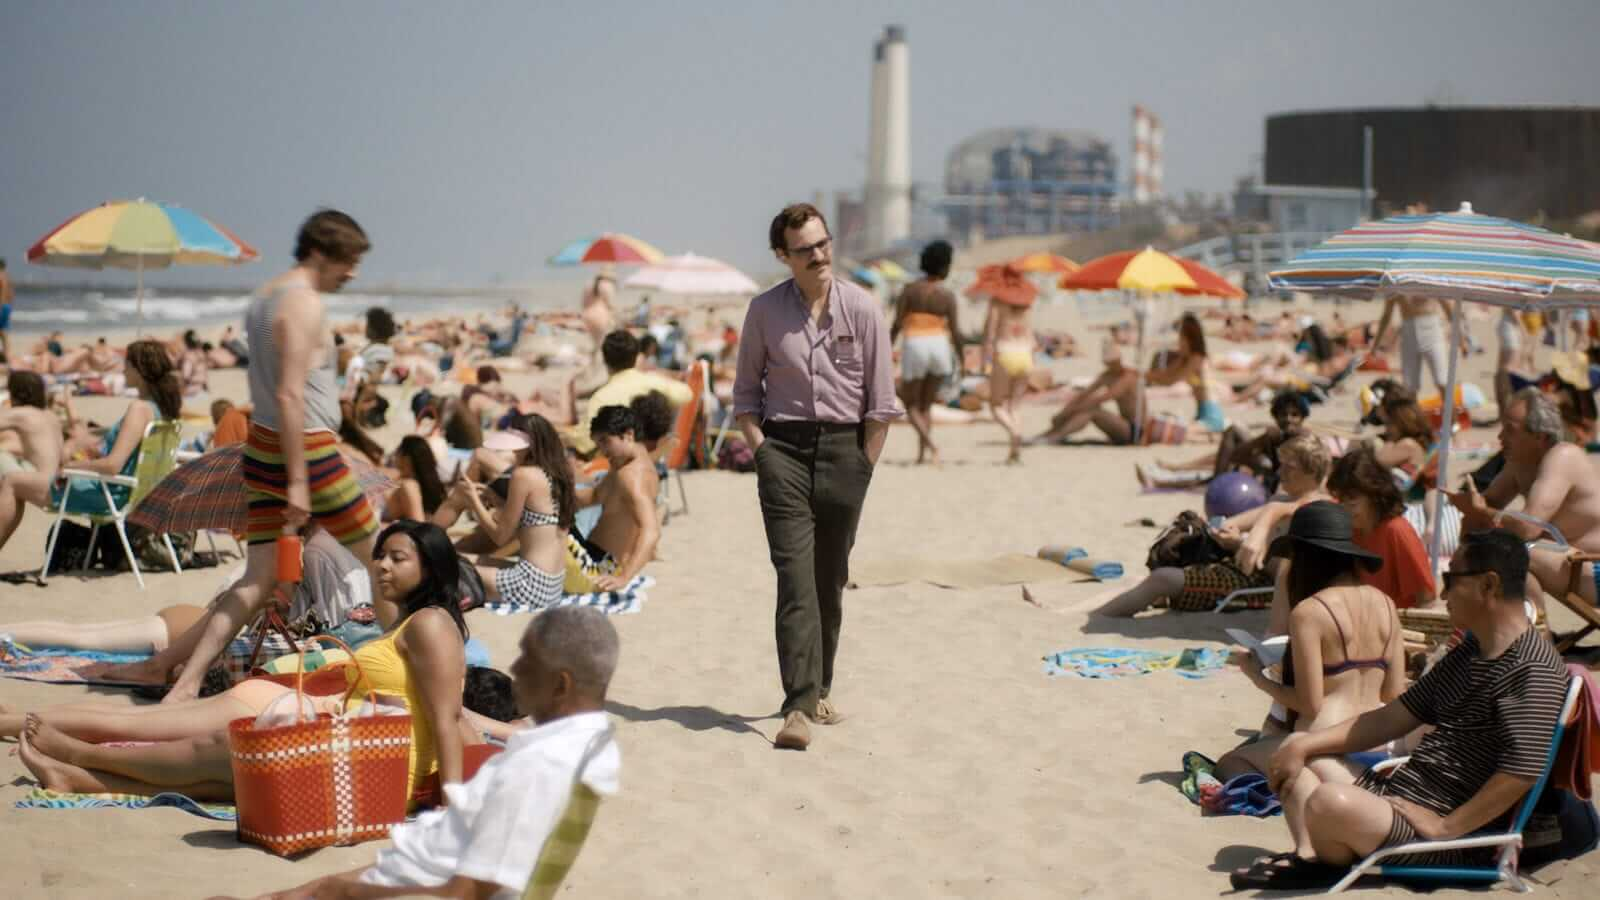 How Spike Jonze Shoots Movies About Loneliness - Wide Shot